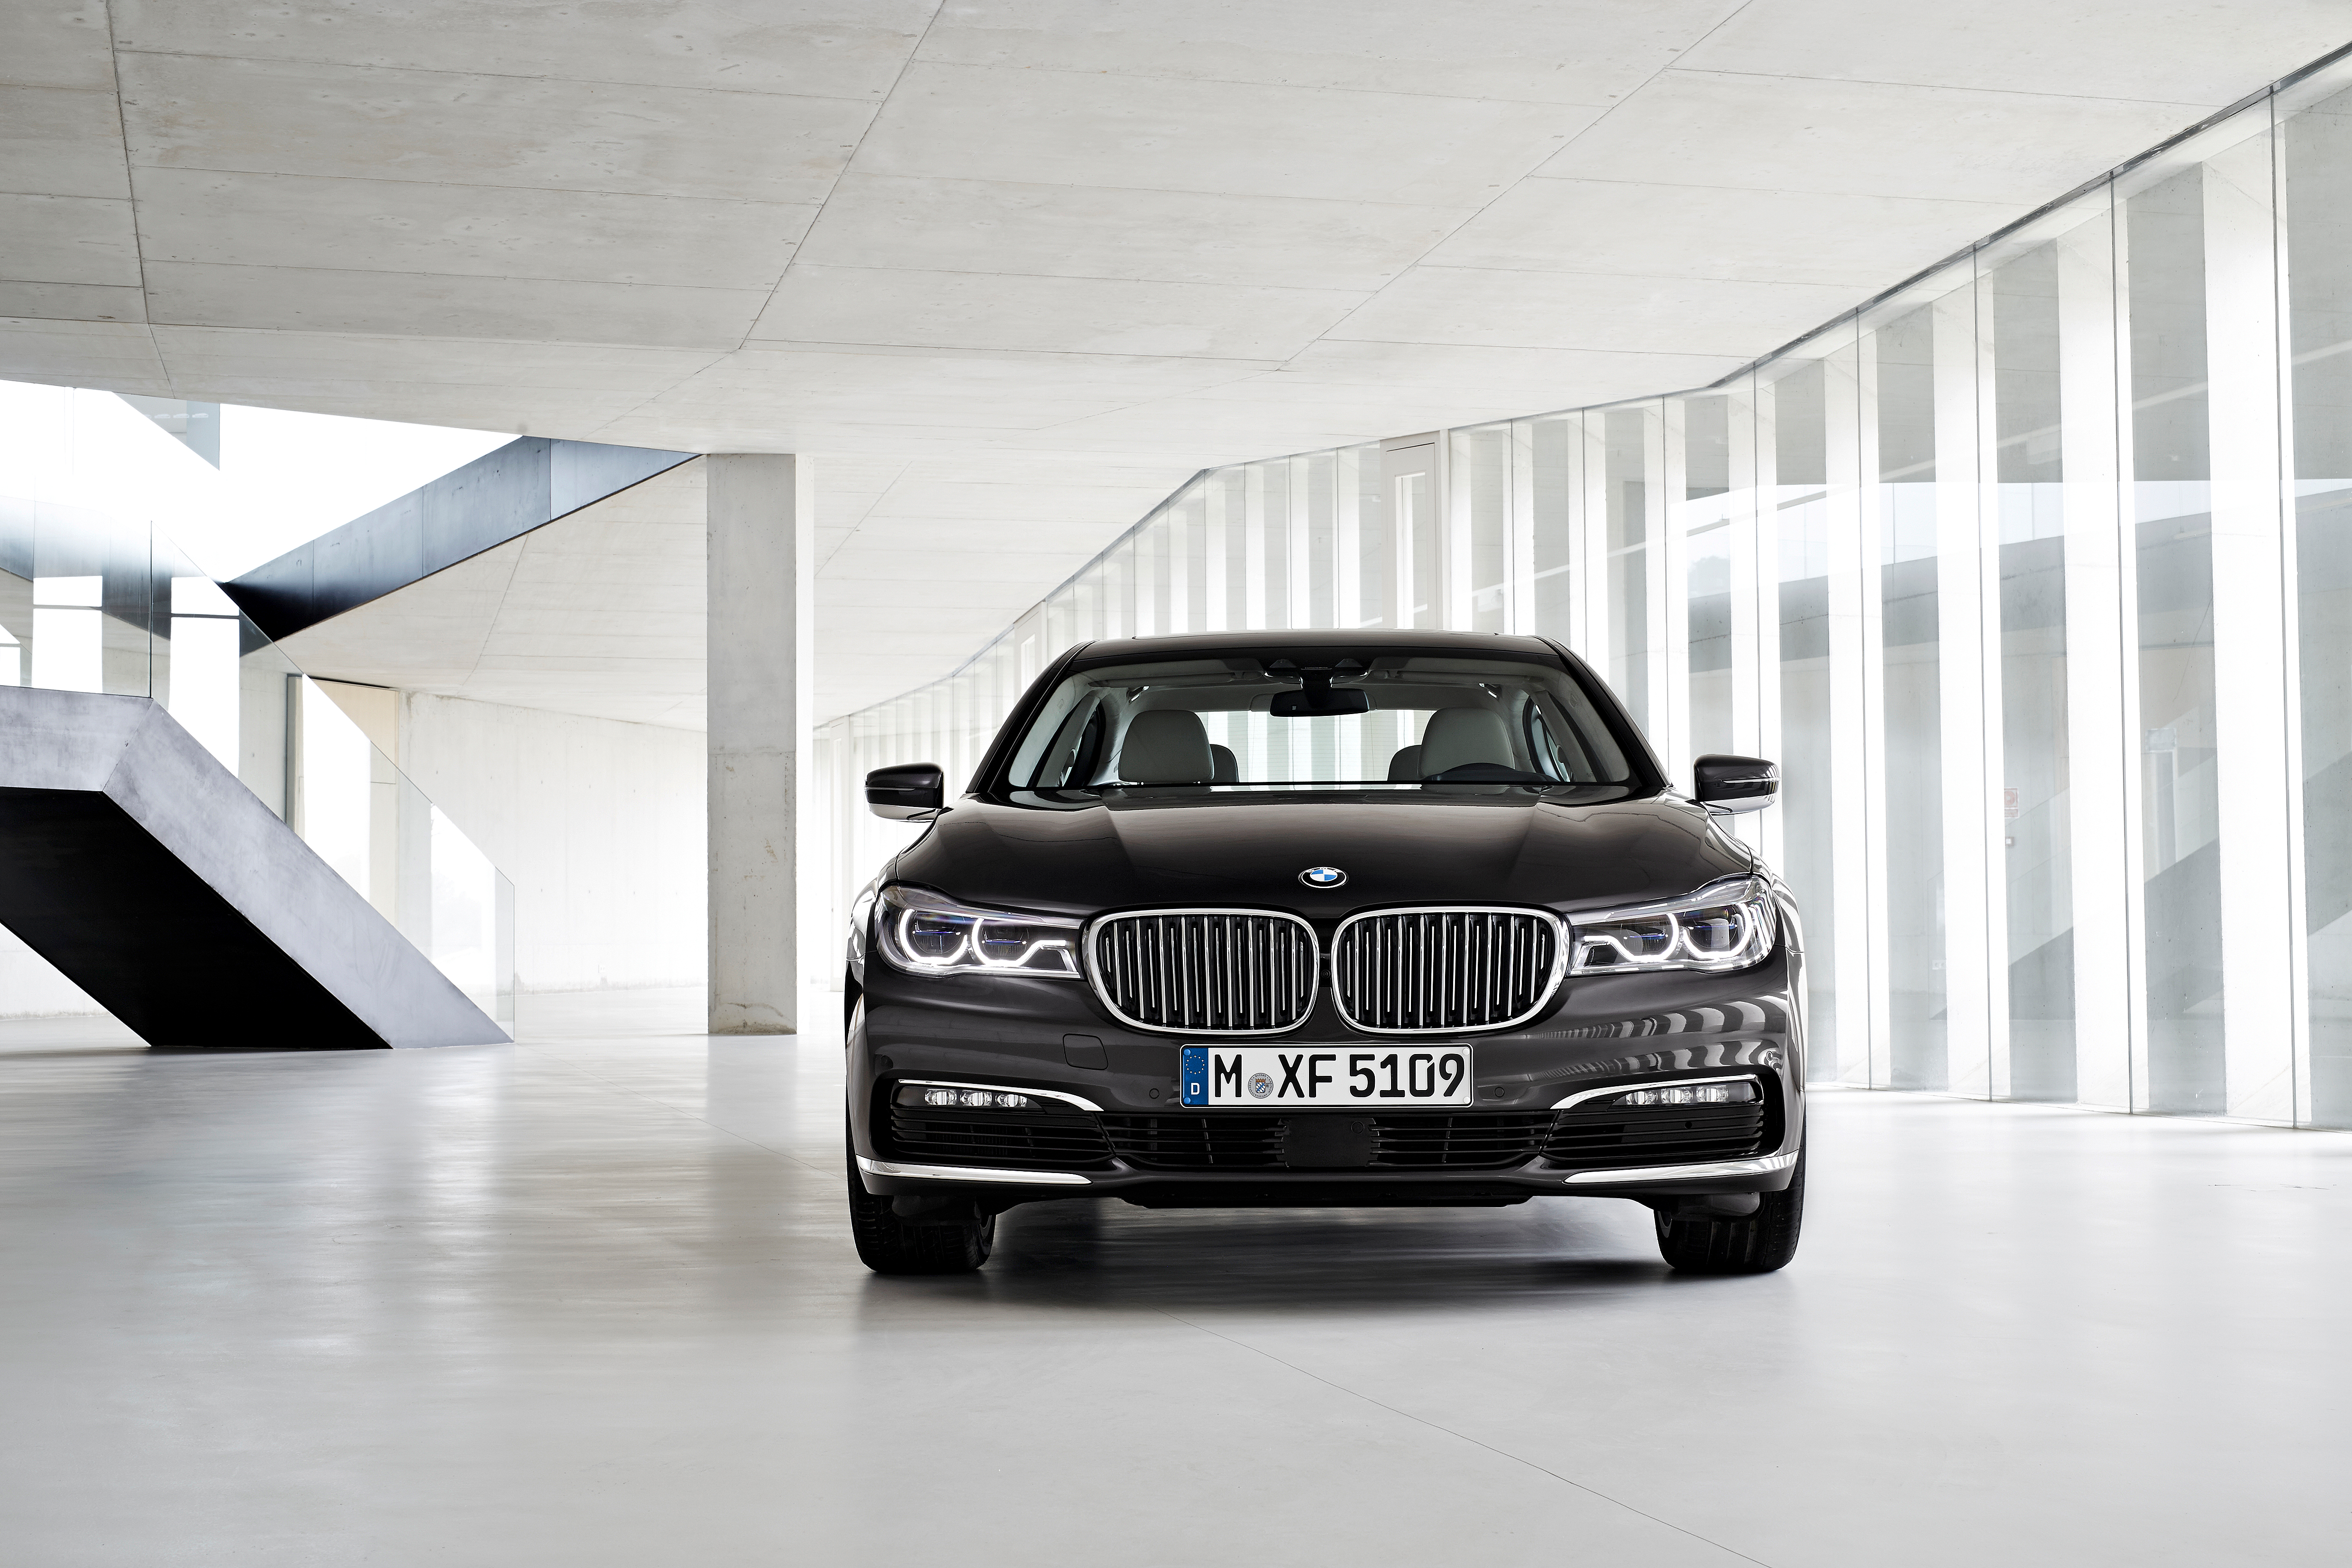 Uber riders get a chance to test-ride the new BMW 7 Series before it arrives in U.S. showrooms.